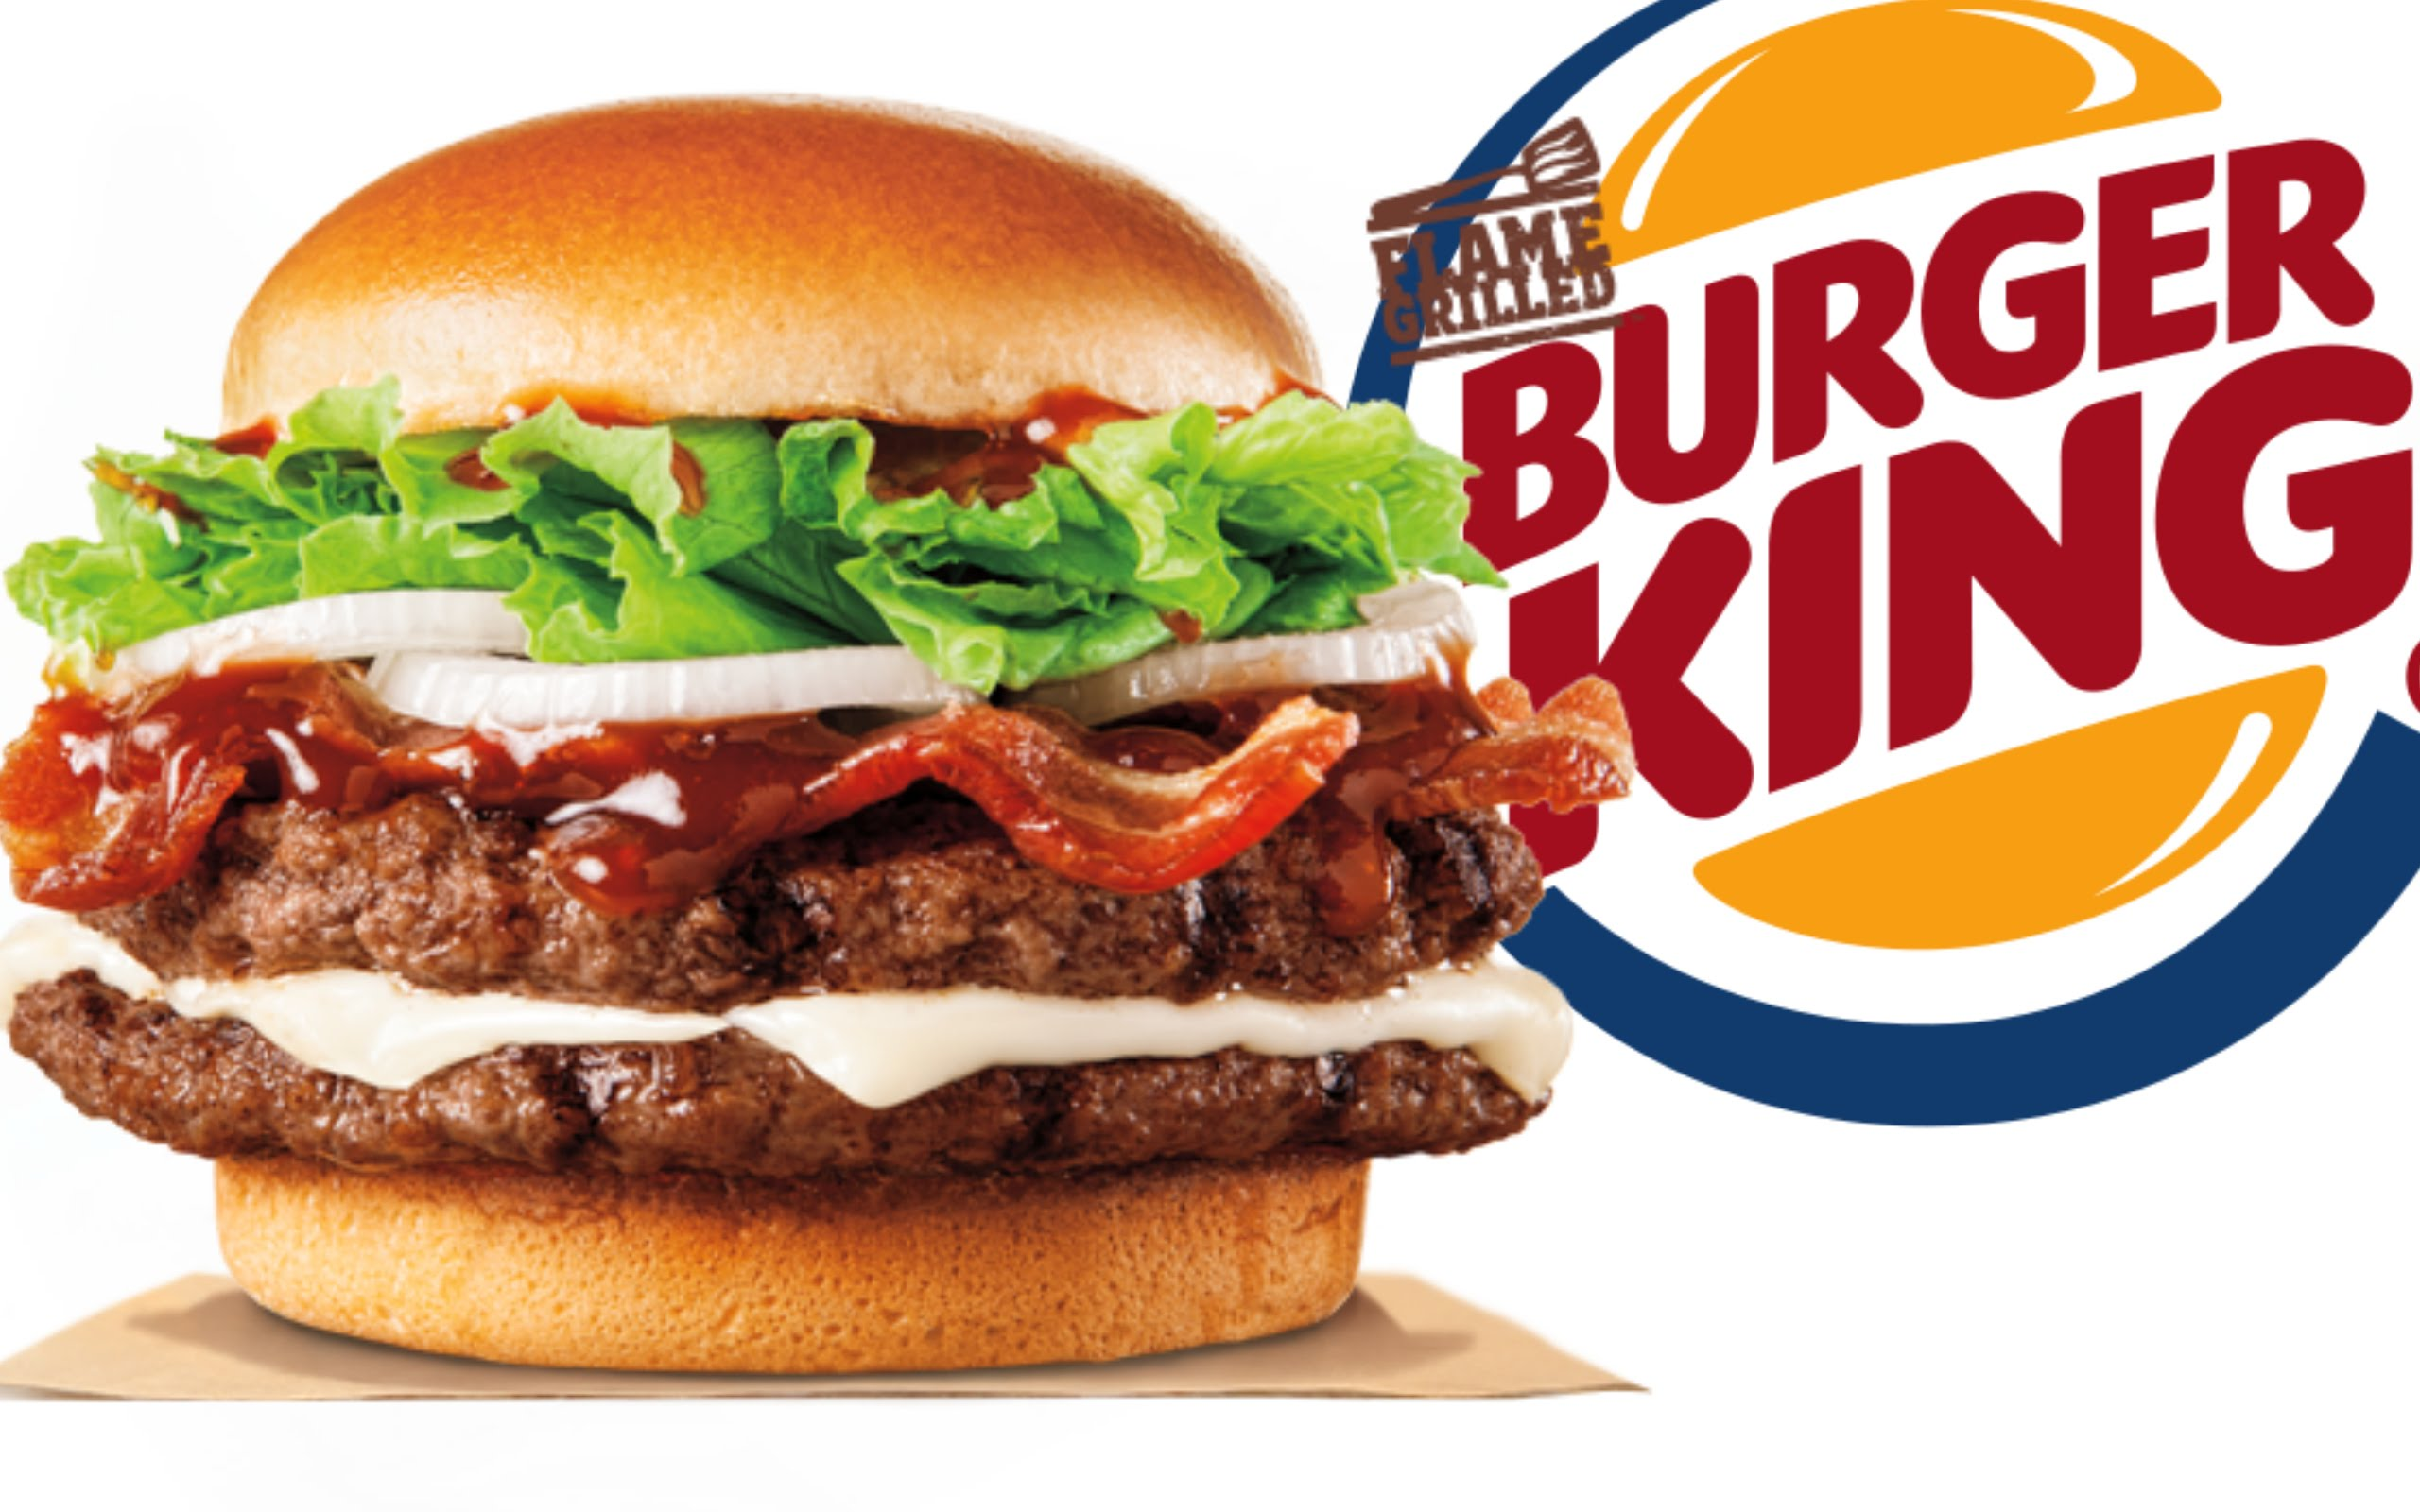 Health Food At Burger King